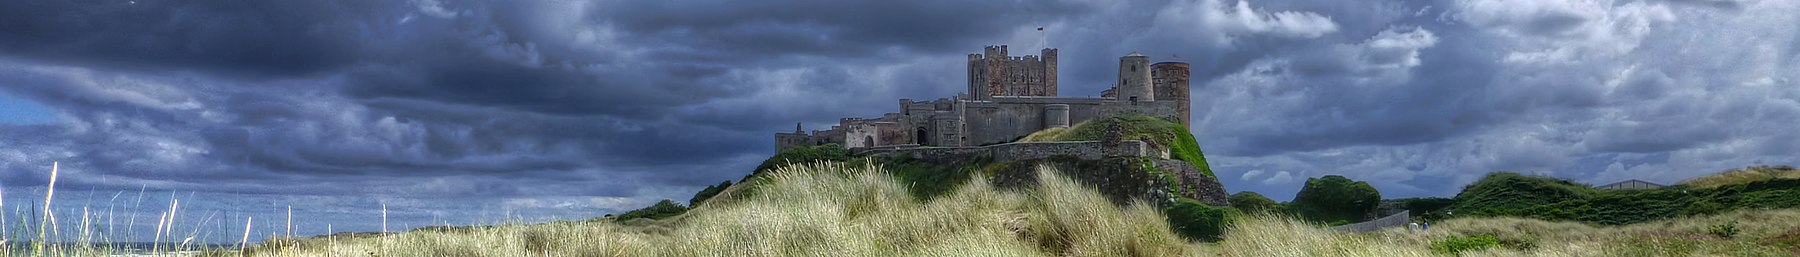 northumberland chat Choose your location and shop burberrycom for innovative menswear and womenswear discover luxury outerwear, leather bags, cashmere scarves, beauty and more.